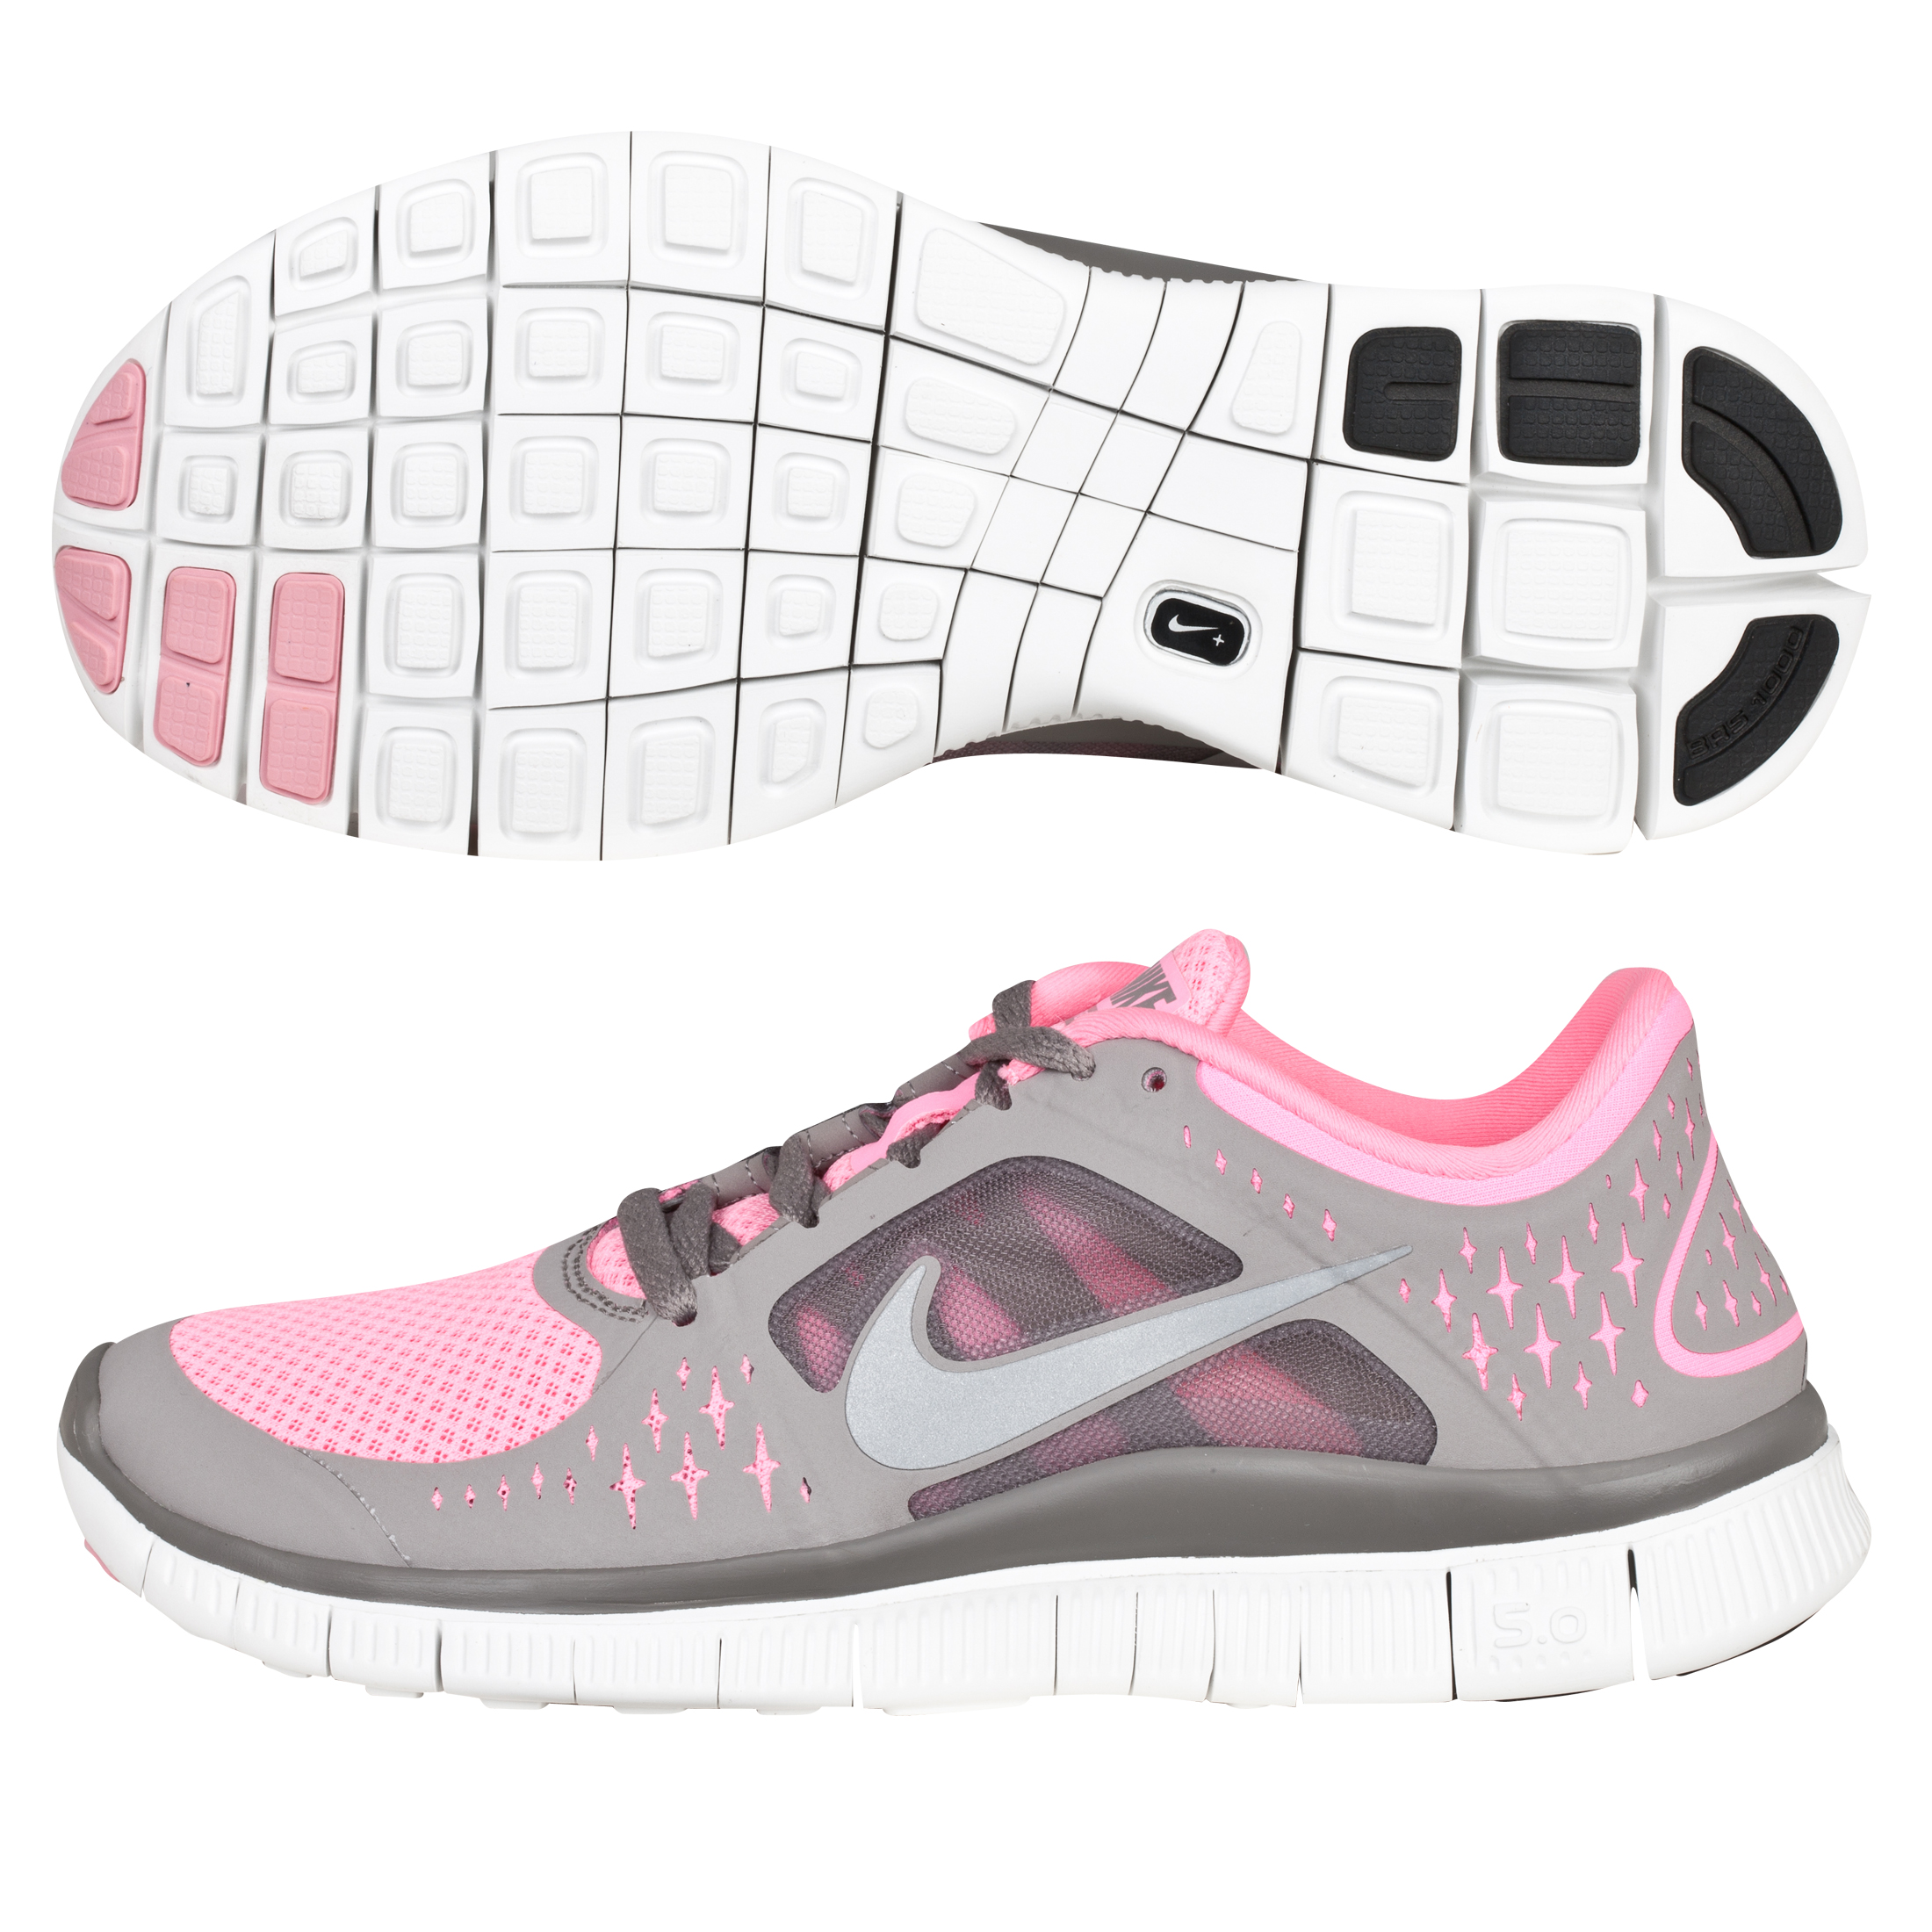 Nike Free Run +3 Barefoot Trainer - Polarized Pink/Sport Grey - Womens